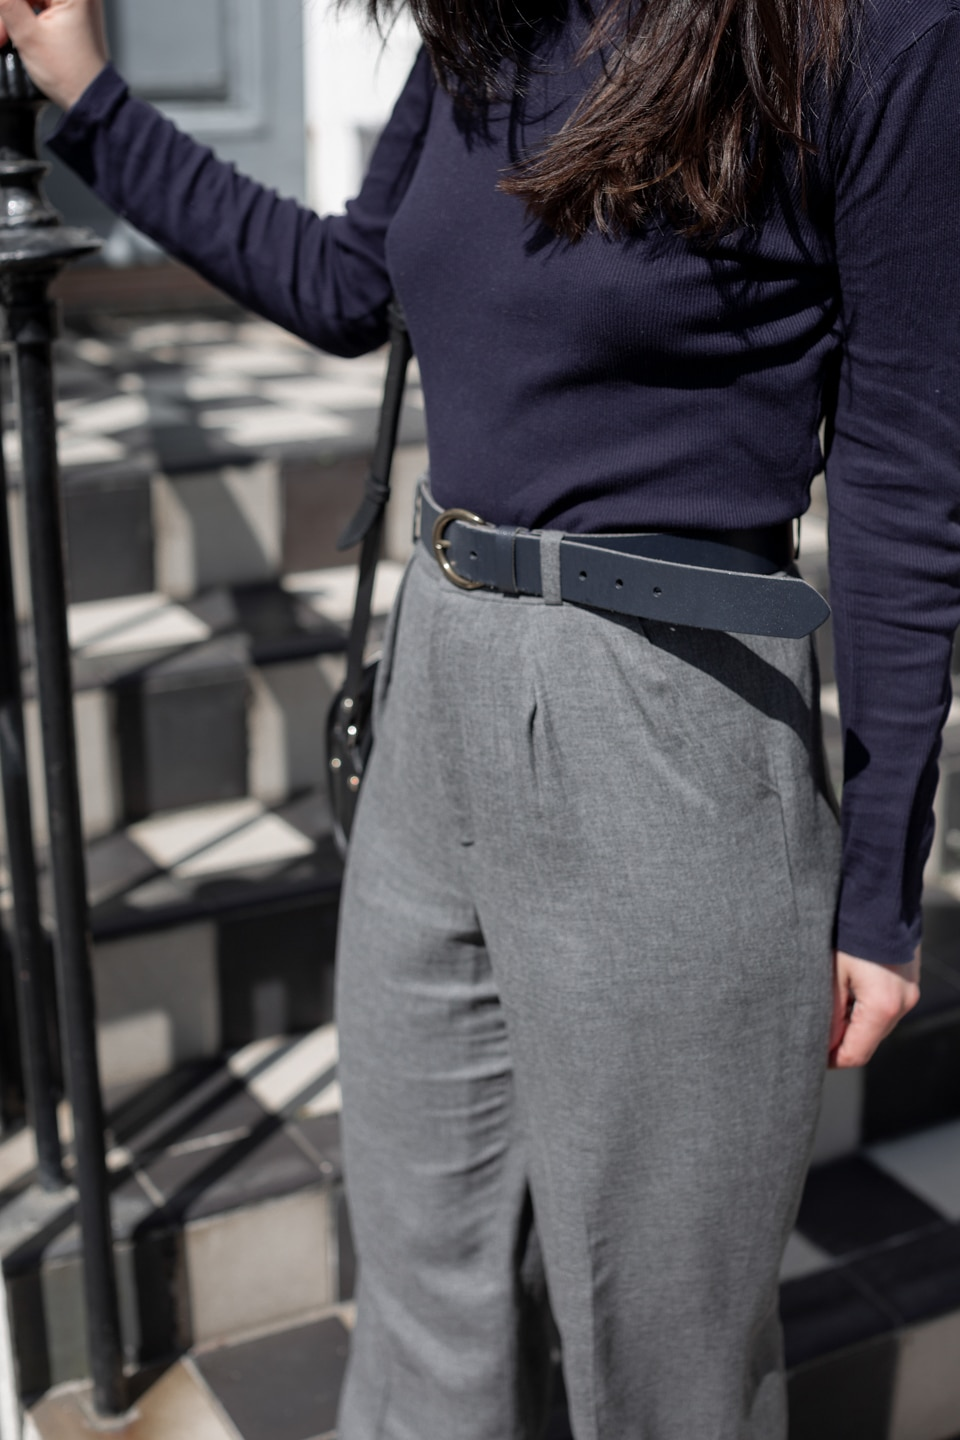 Close-up of trousers and belt